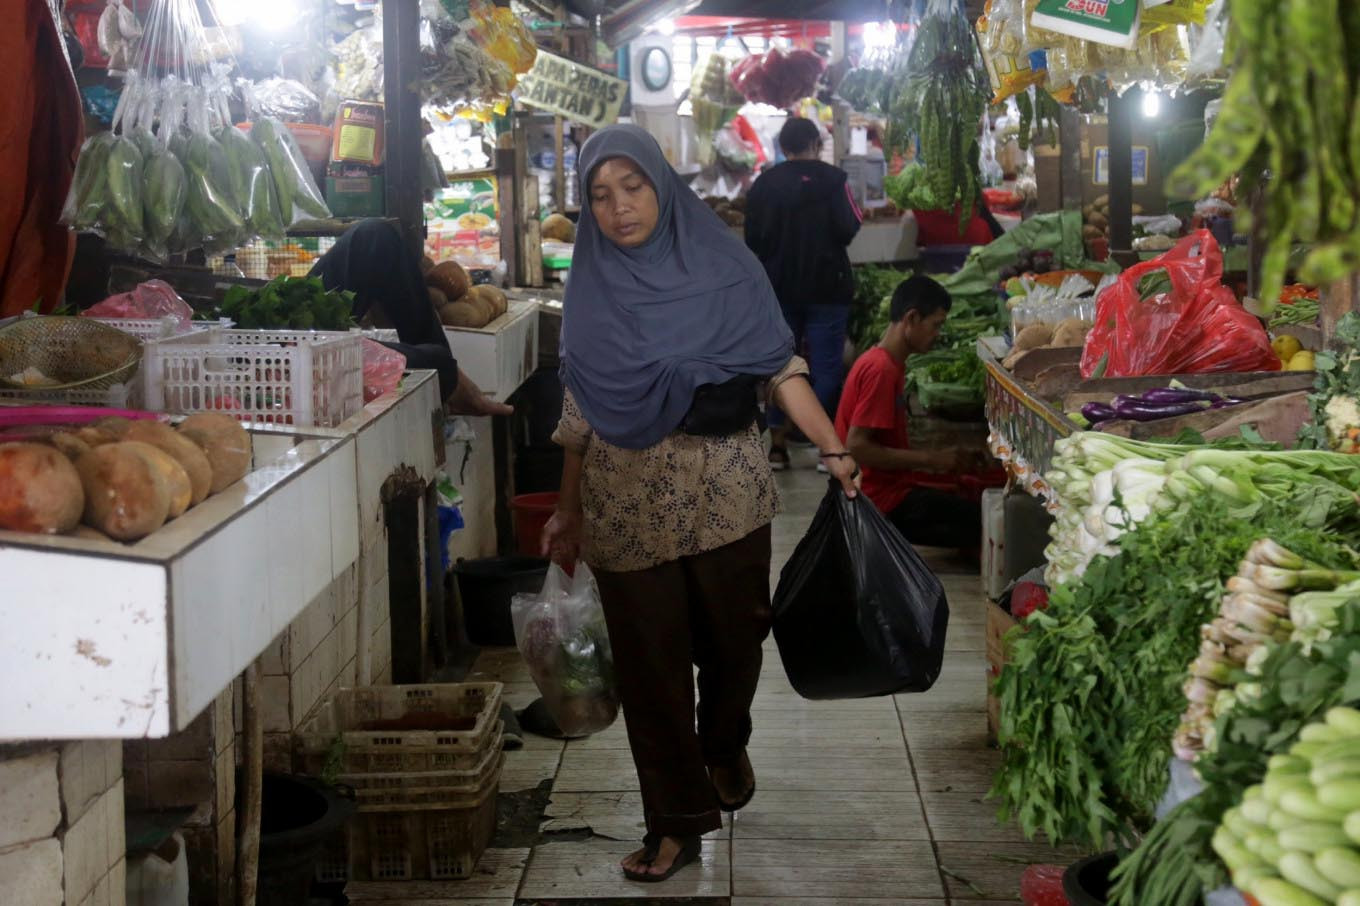 Indonesia records 2.68 percent January inflation using new formula